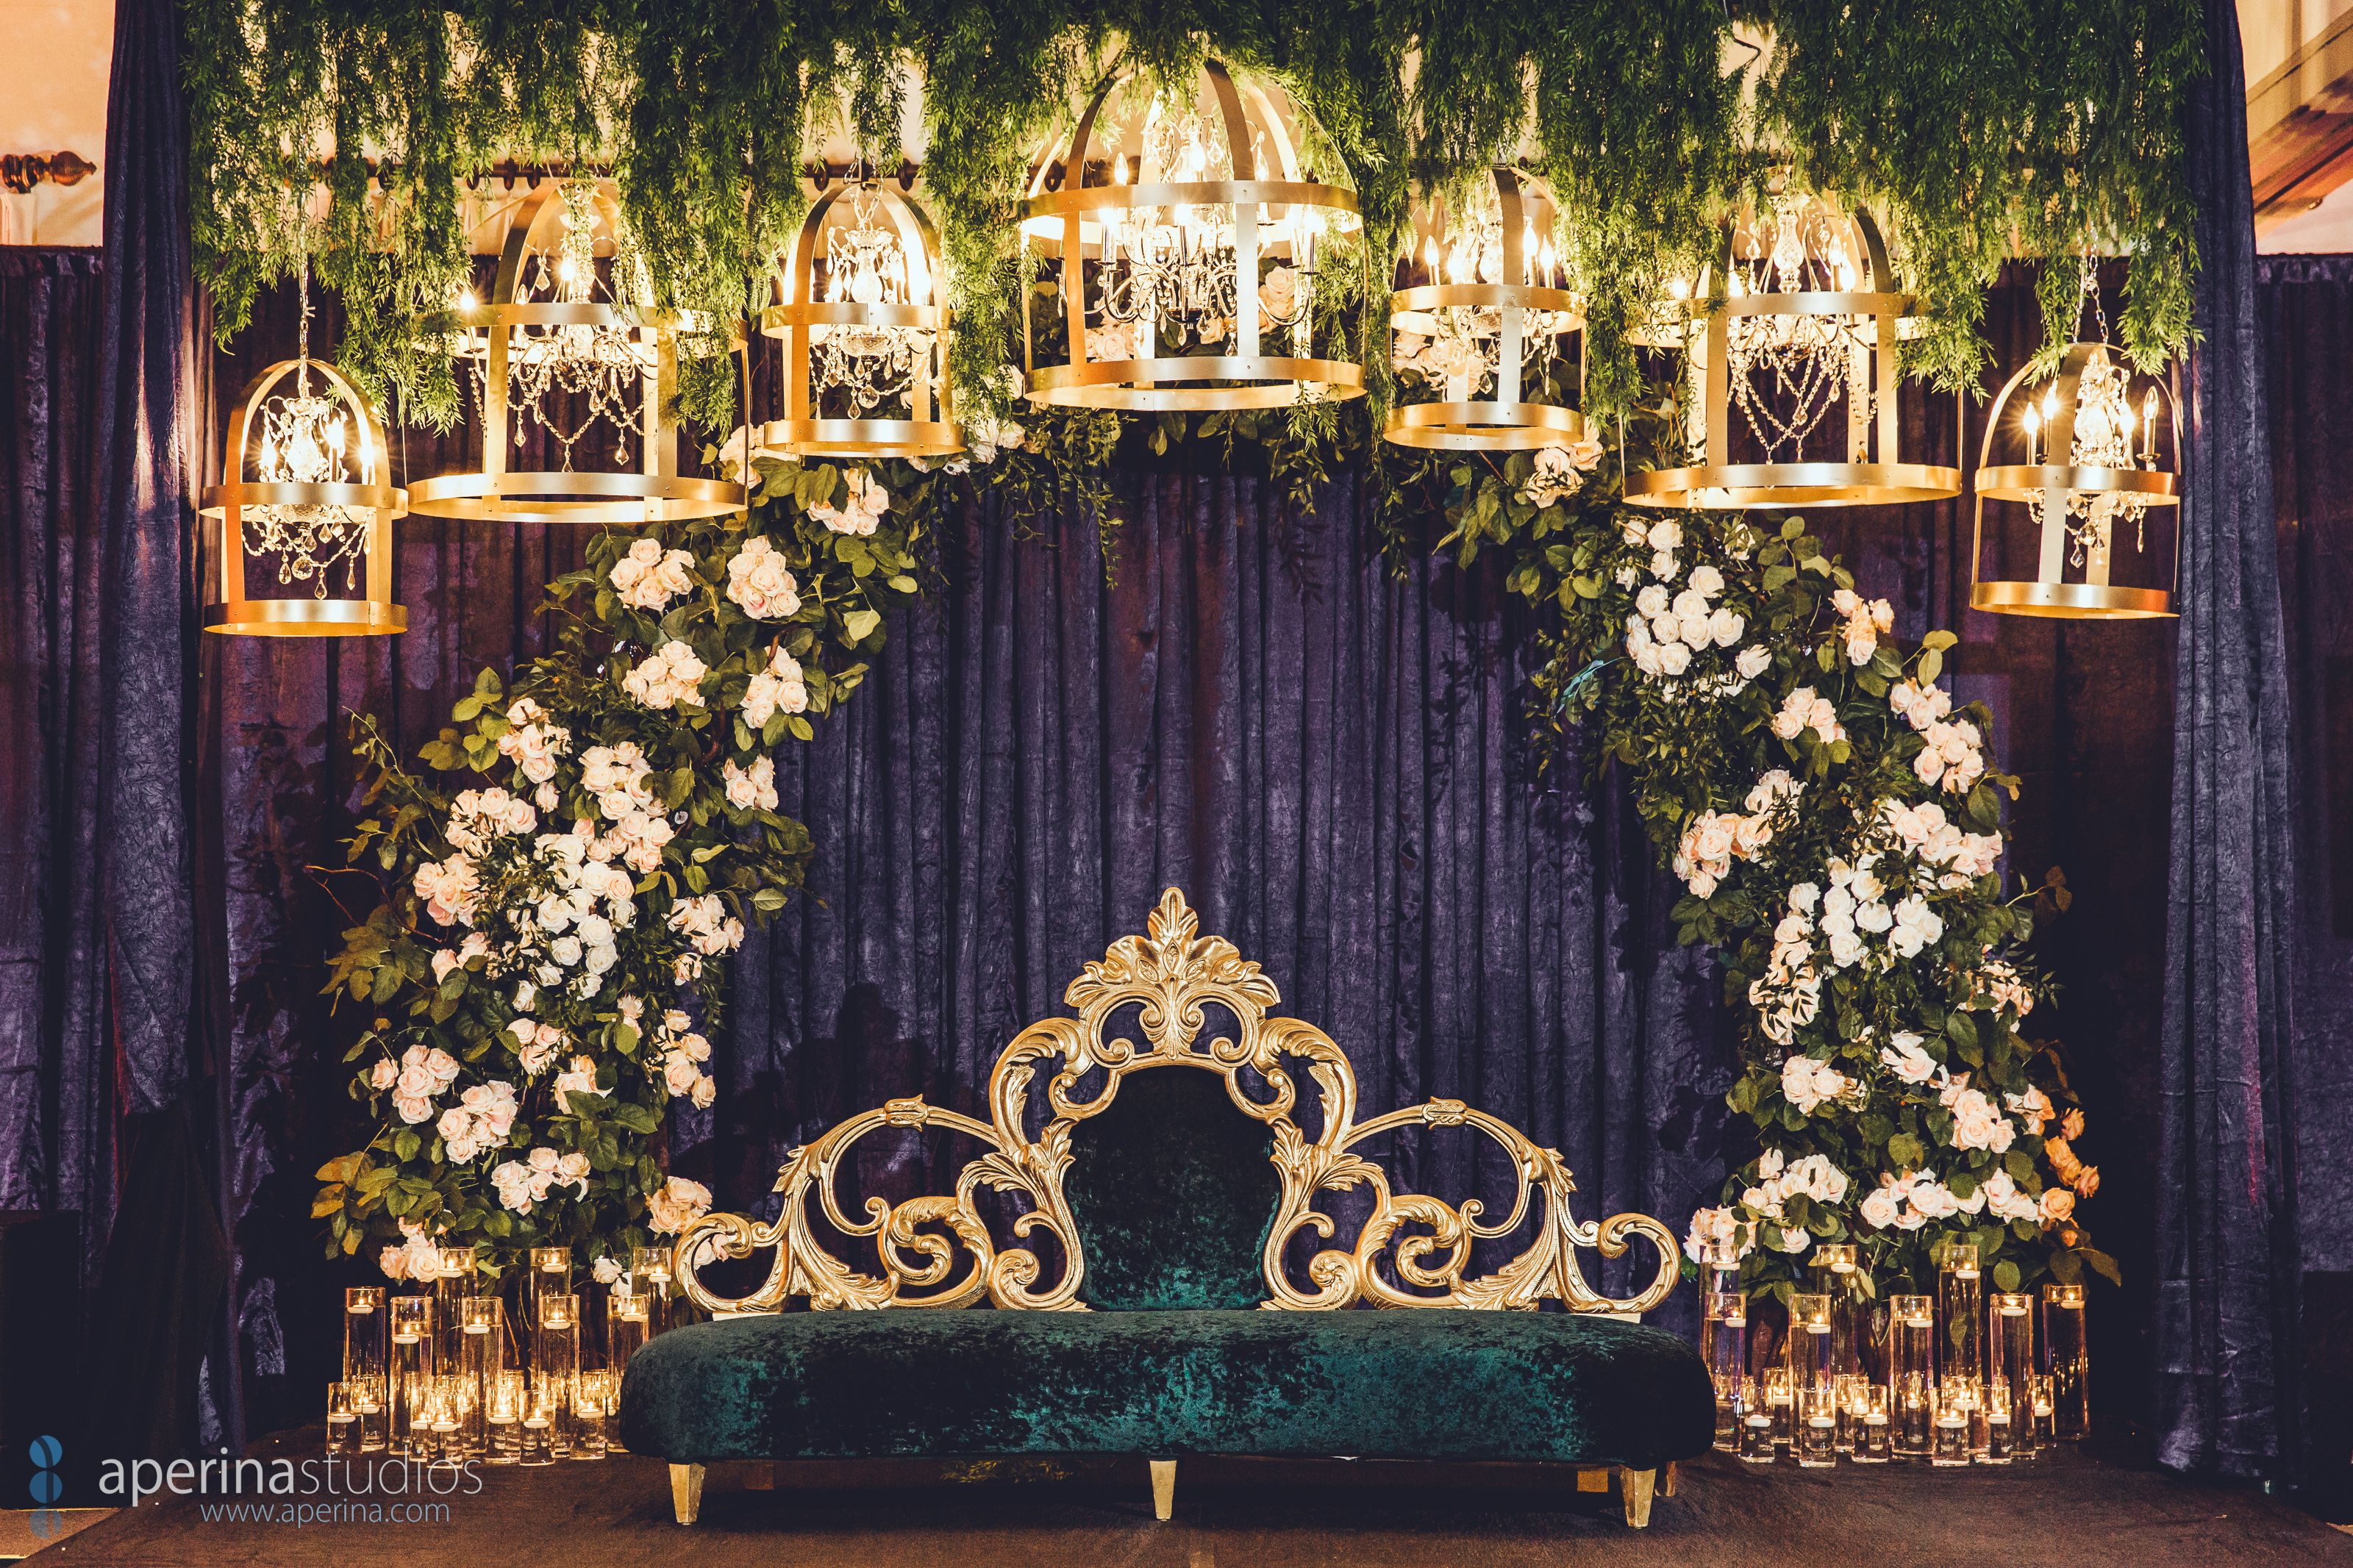 STUNNING extraordinary wedding reception decor with flower